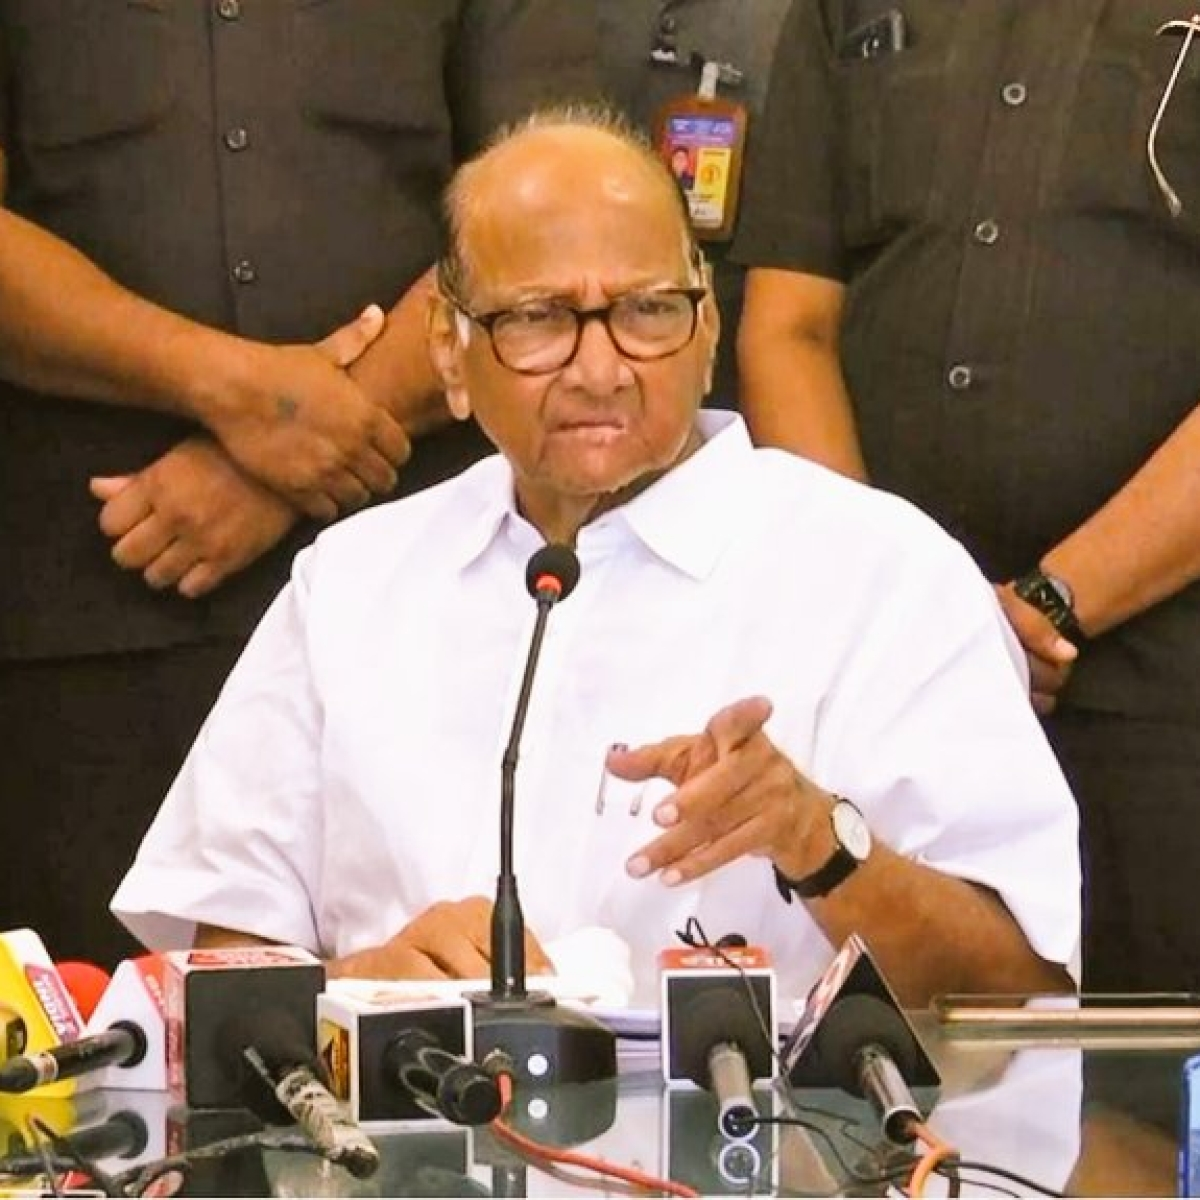 Devendra Fadnavis is impatient and desperate but state govt is stable: Sharad Pawar